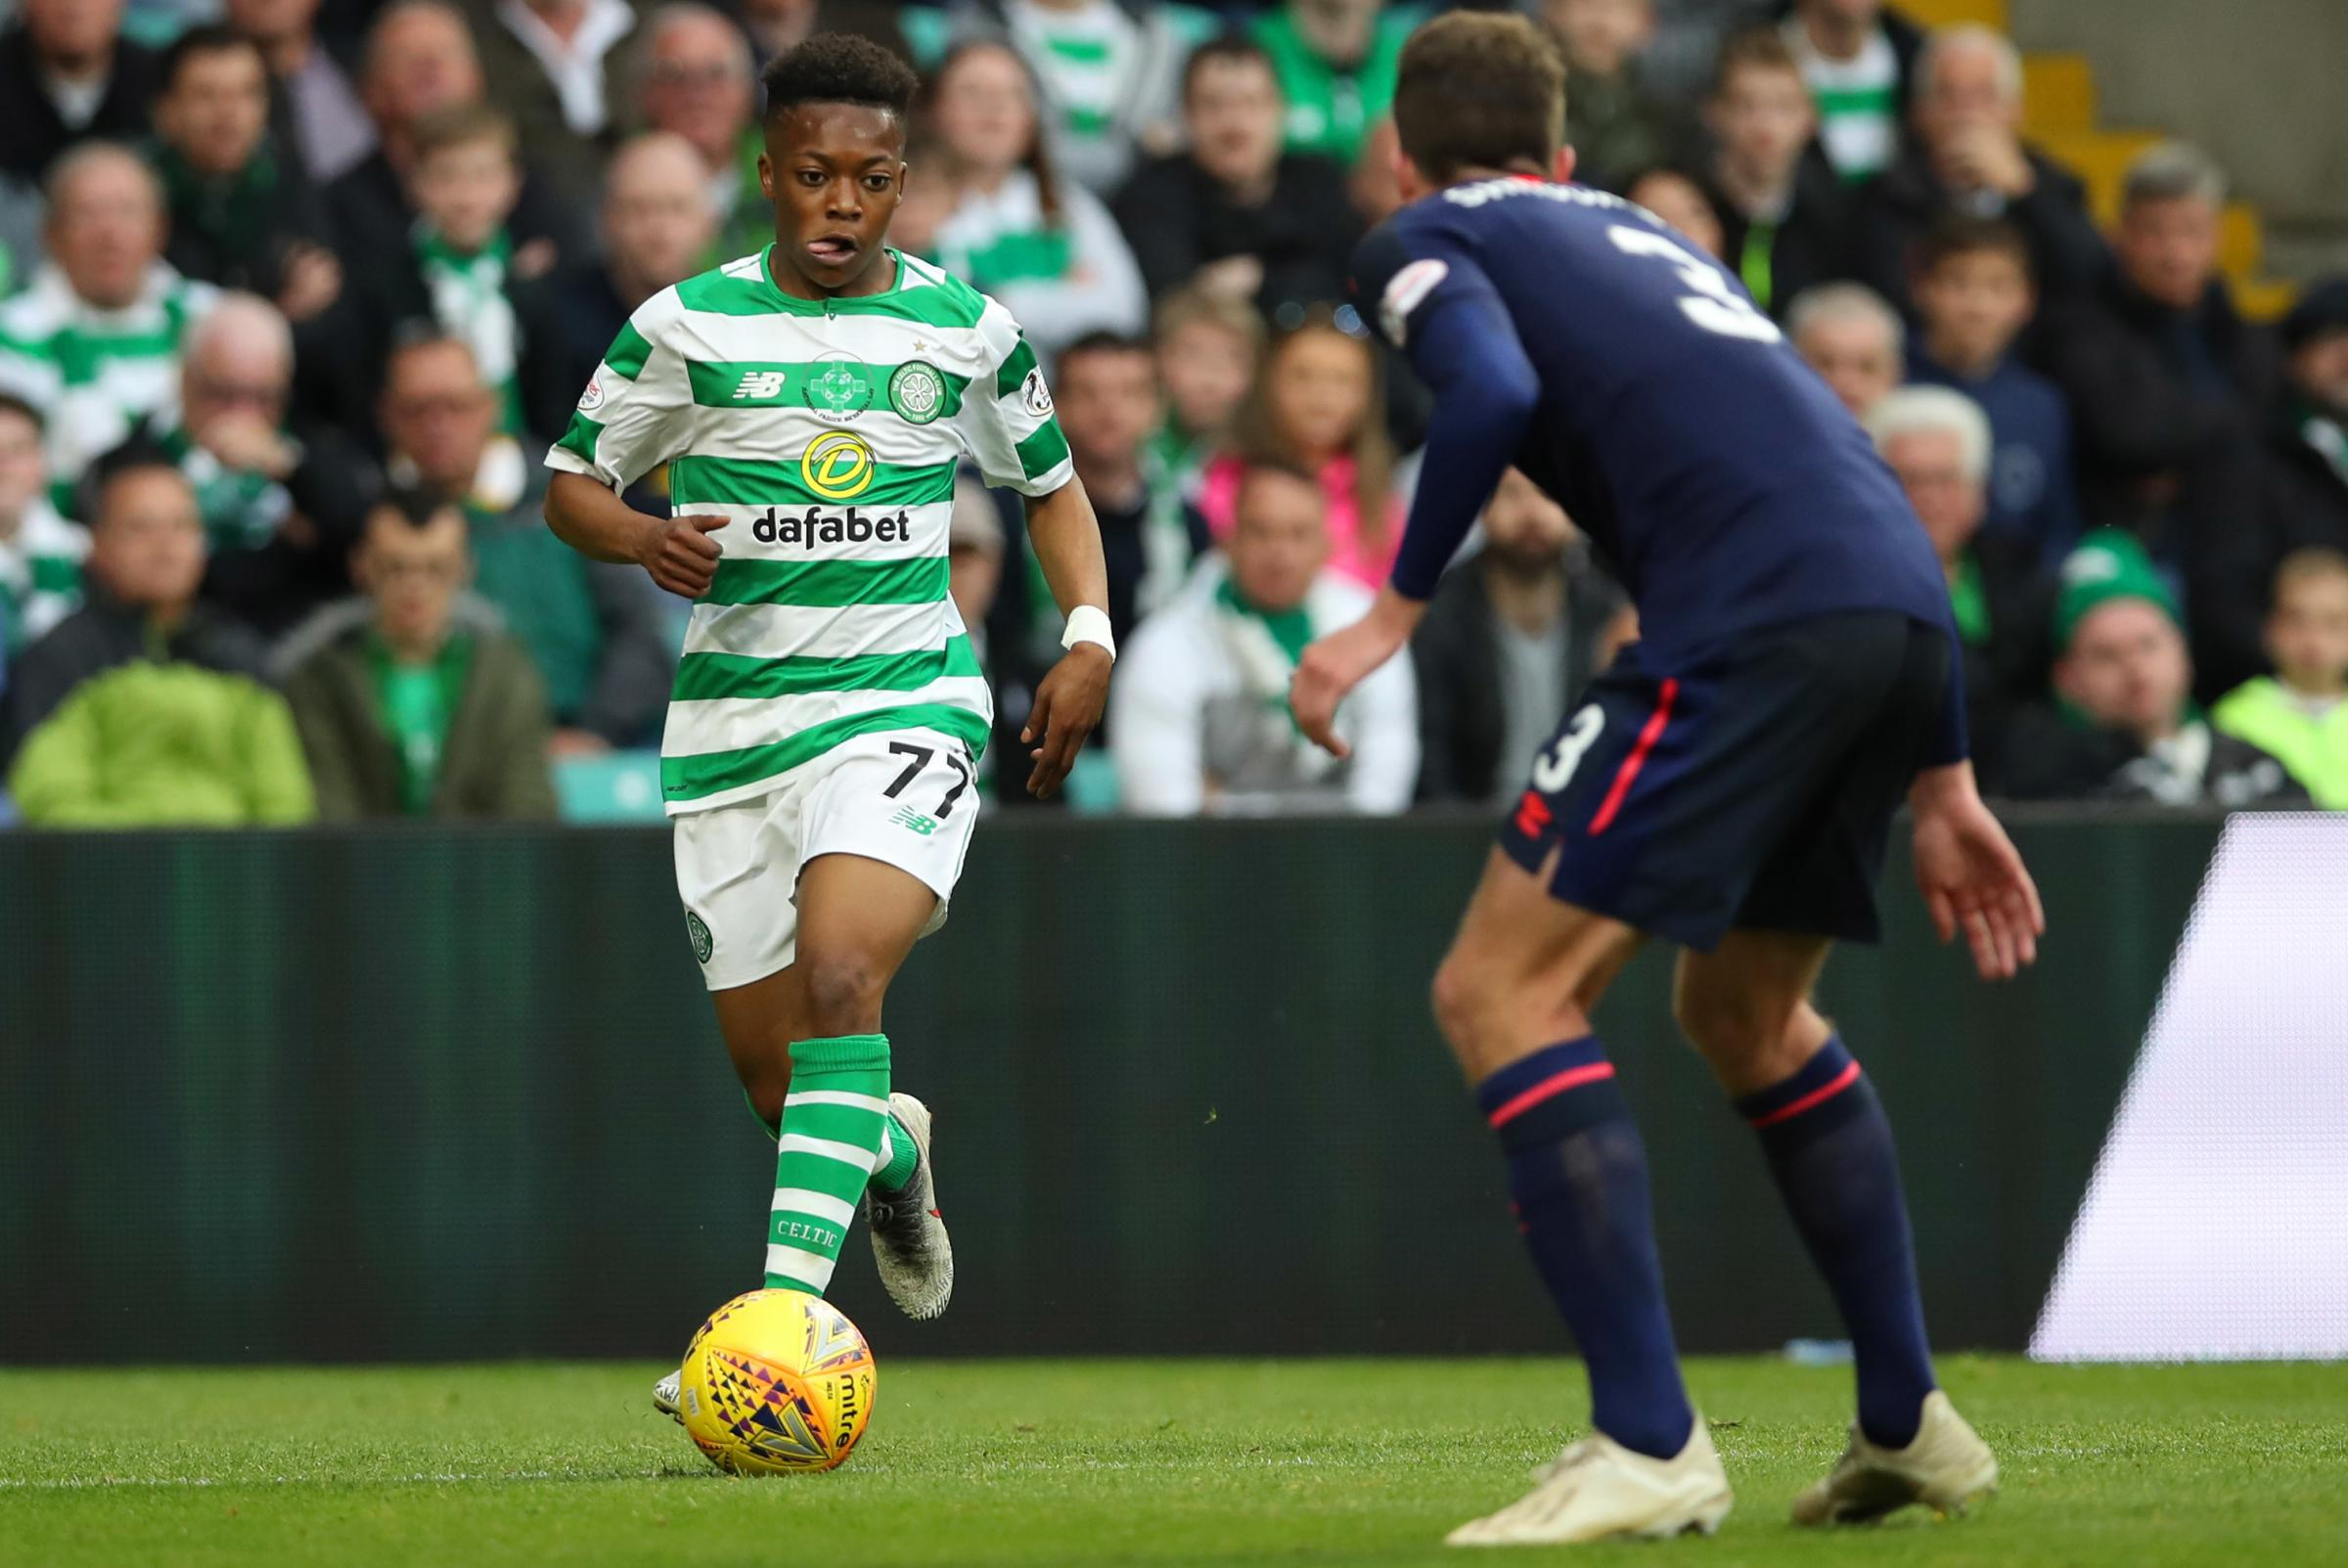 Believe the hype! Karamoko Dembele can live up to expectations after shining on his Celtic debut